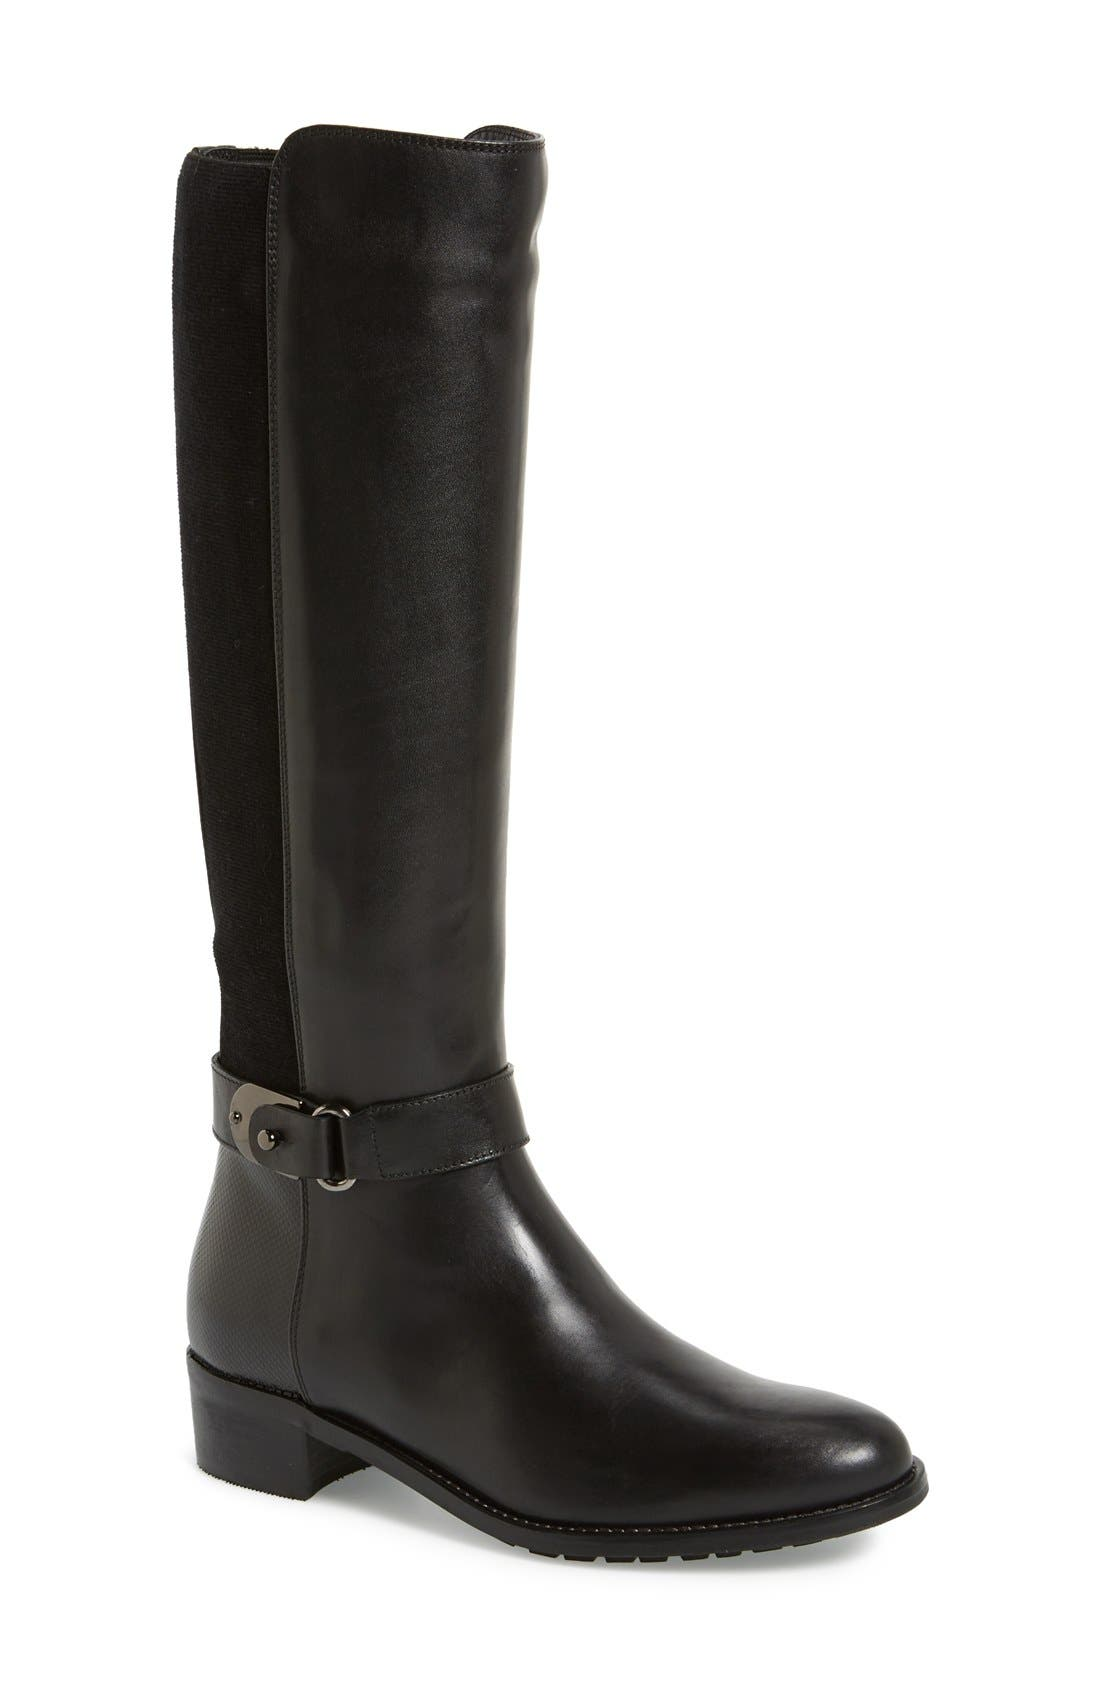 Alternate Image 1 Selected - Aquatalia 'Olita' Weatherproof Riding Boot (Women) (Nordstrom Exclusive)